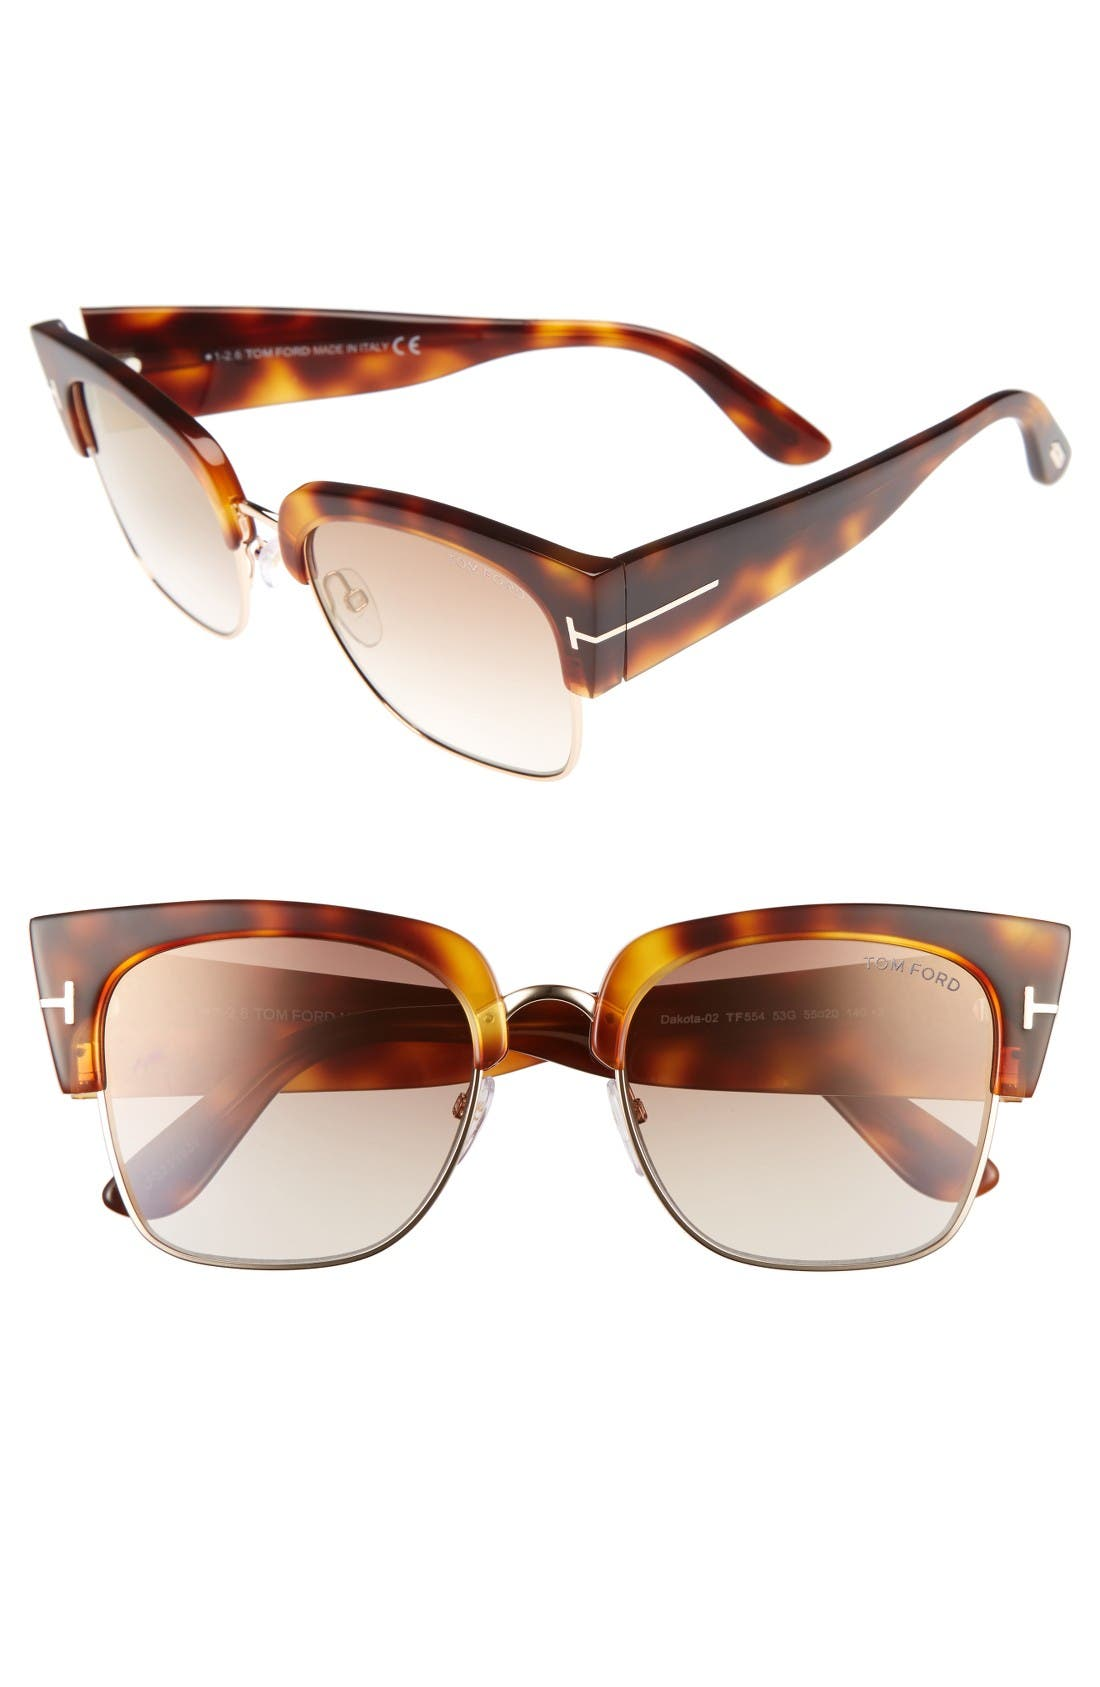 Dakota 55mm Retro Sunglasses,                         Main,                         color, Blonde Havana/ Brown Mirror